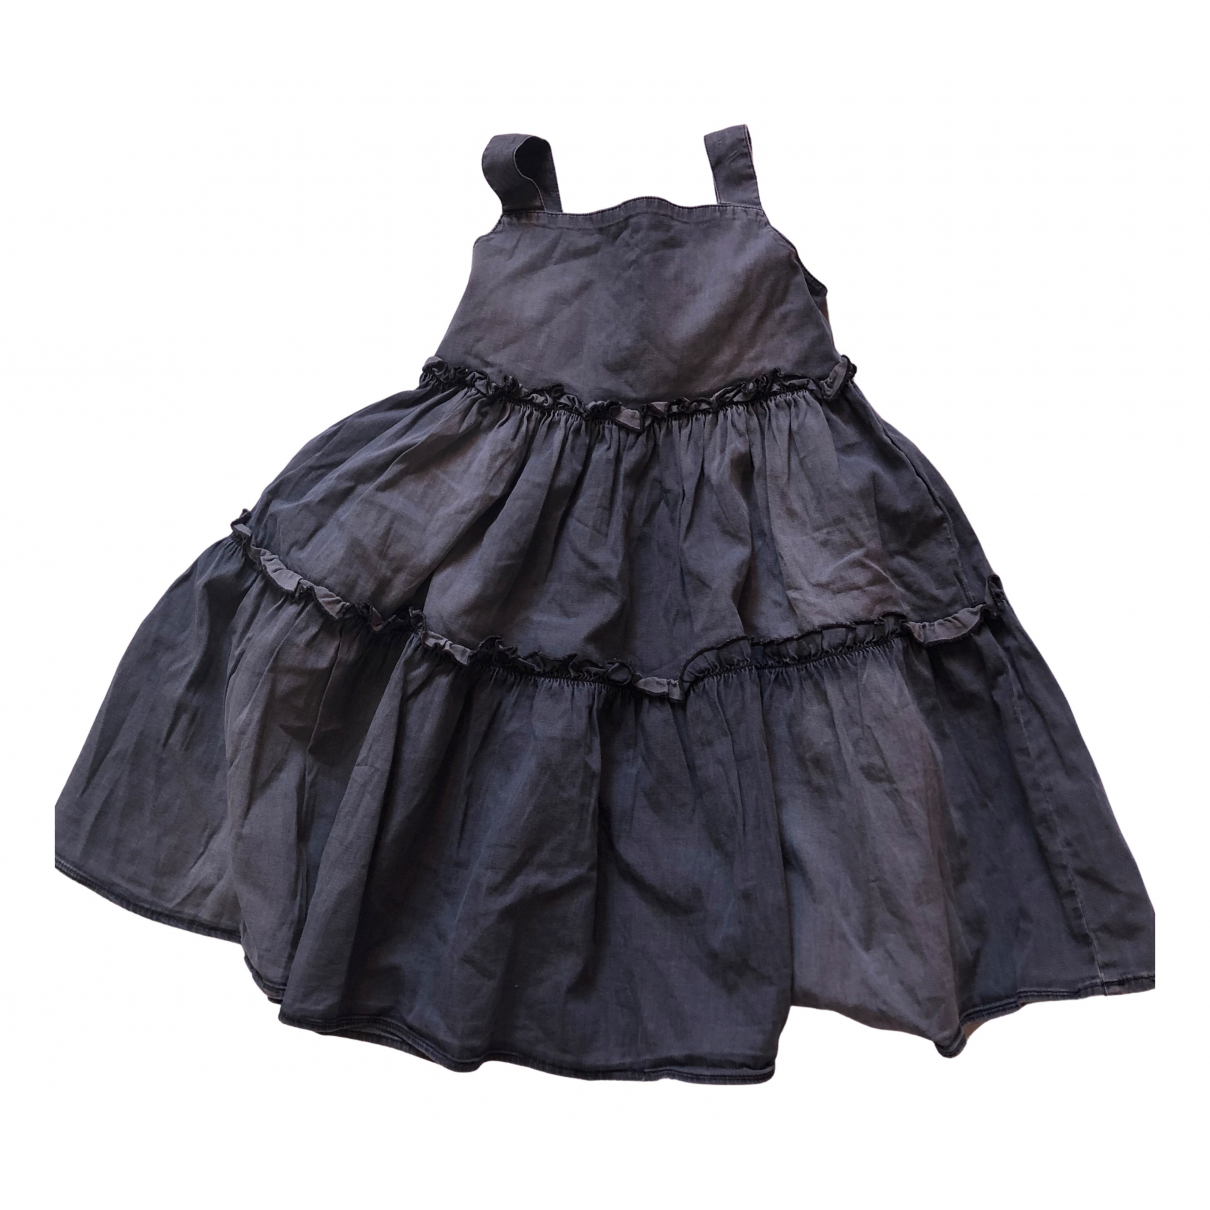 D&g N Blue Cotton dress for Kids 4 years - up to 102cm FR